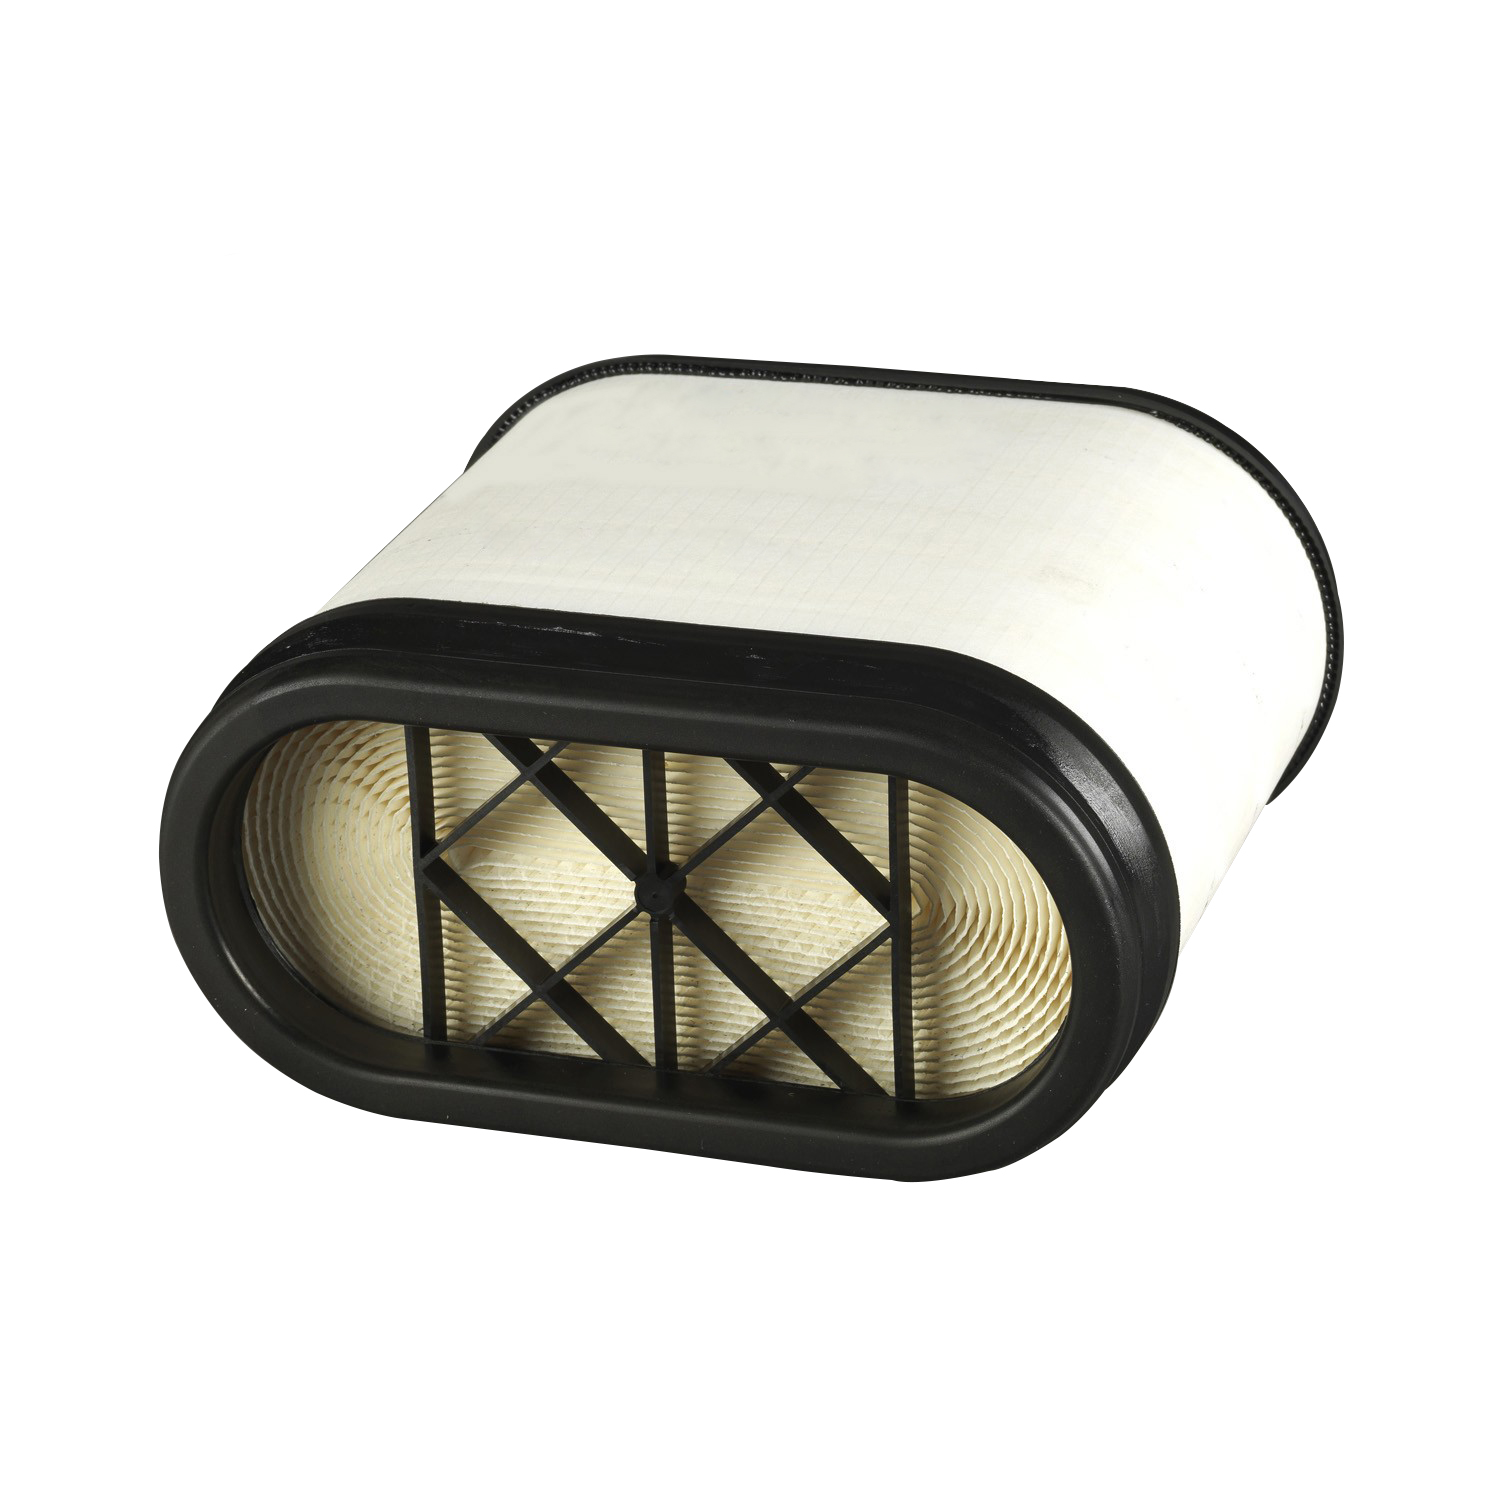 Efficiency Truck Honeycomb Air Filter P788895 for Donaldson Powercore Air Filter